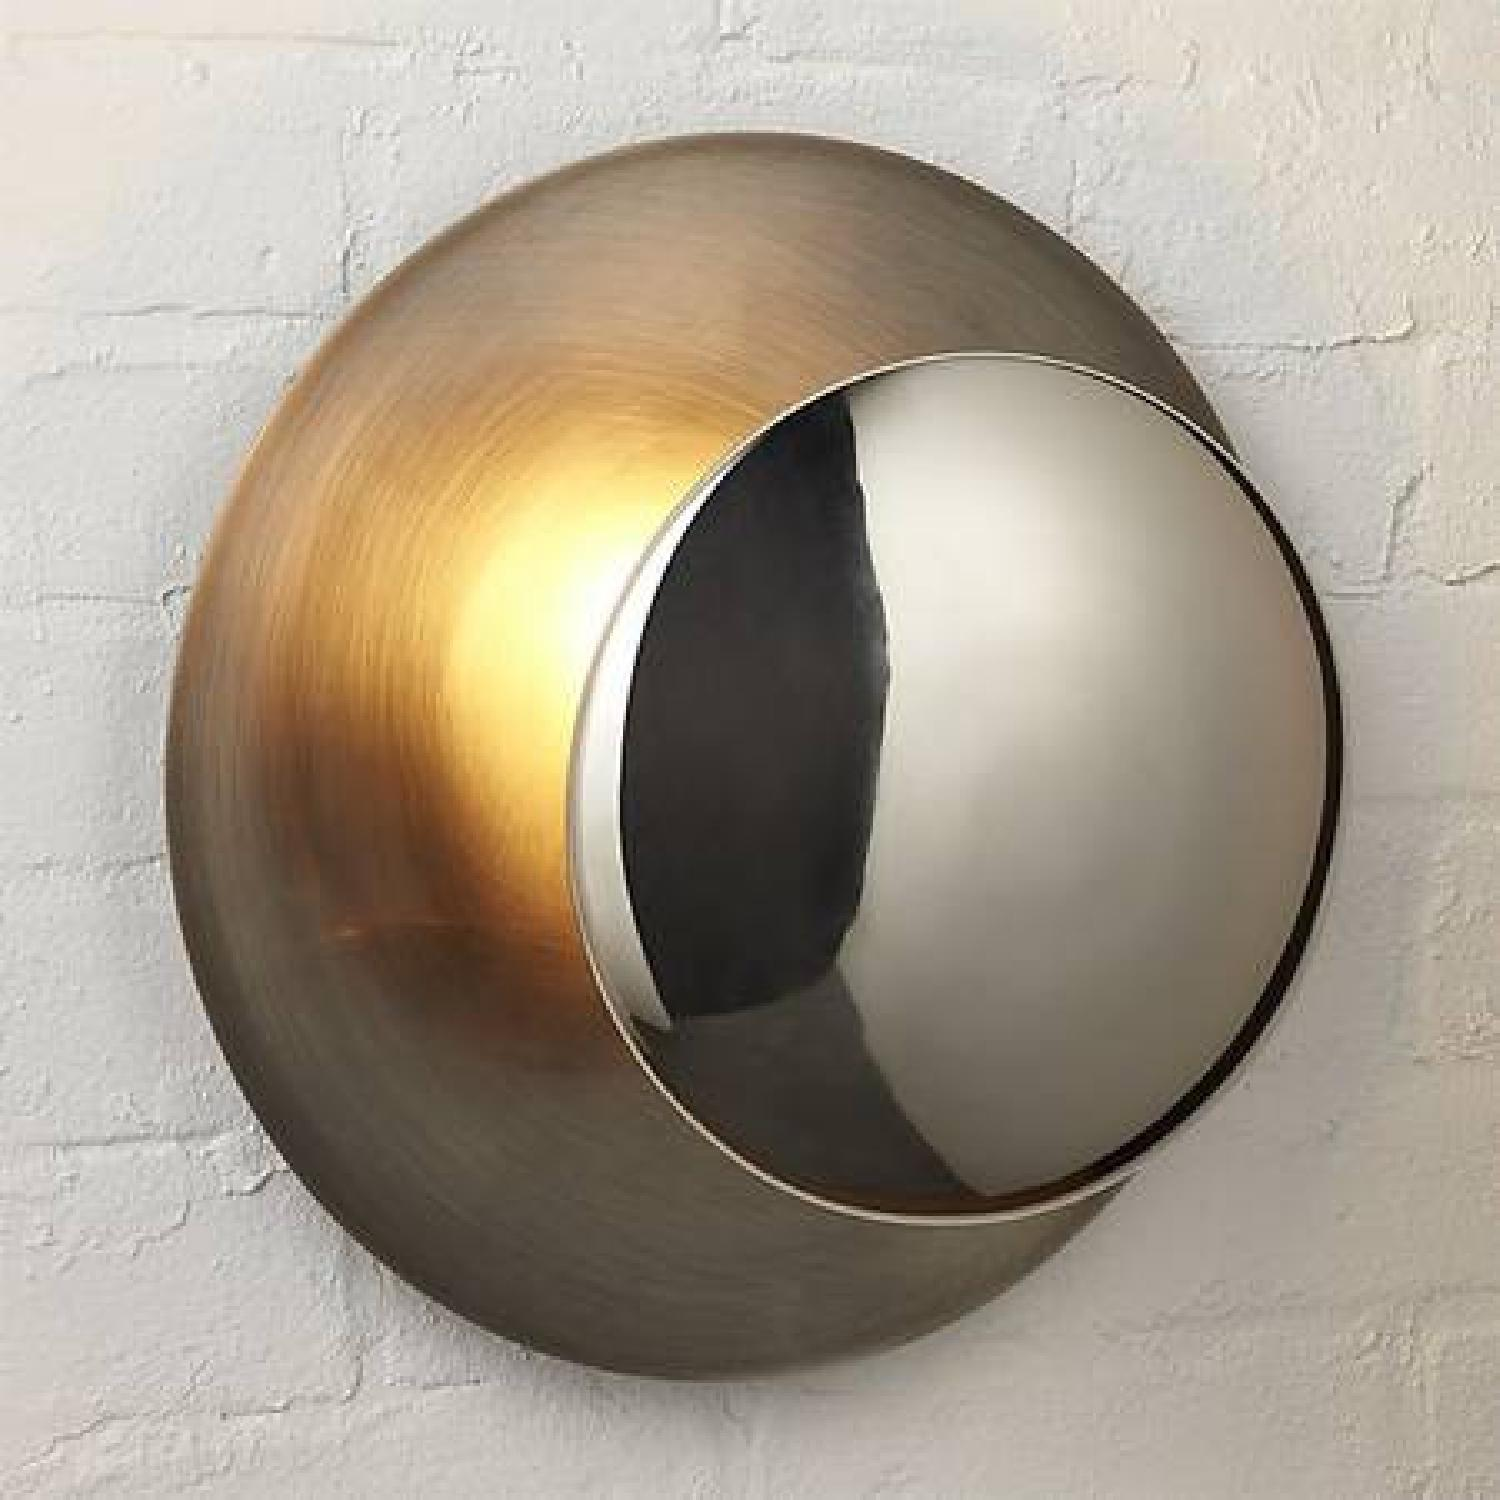 CB2 Disc Wall Sconces in Silver - image-1